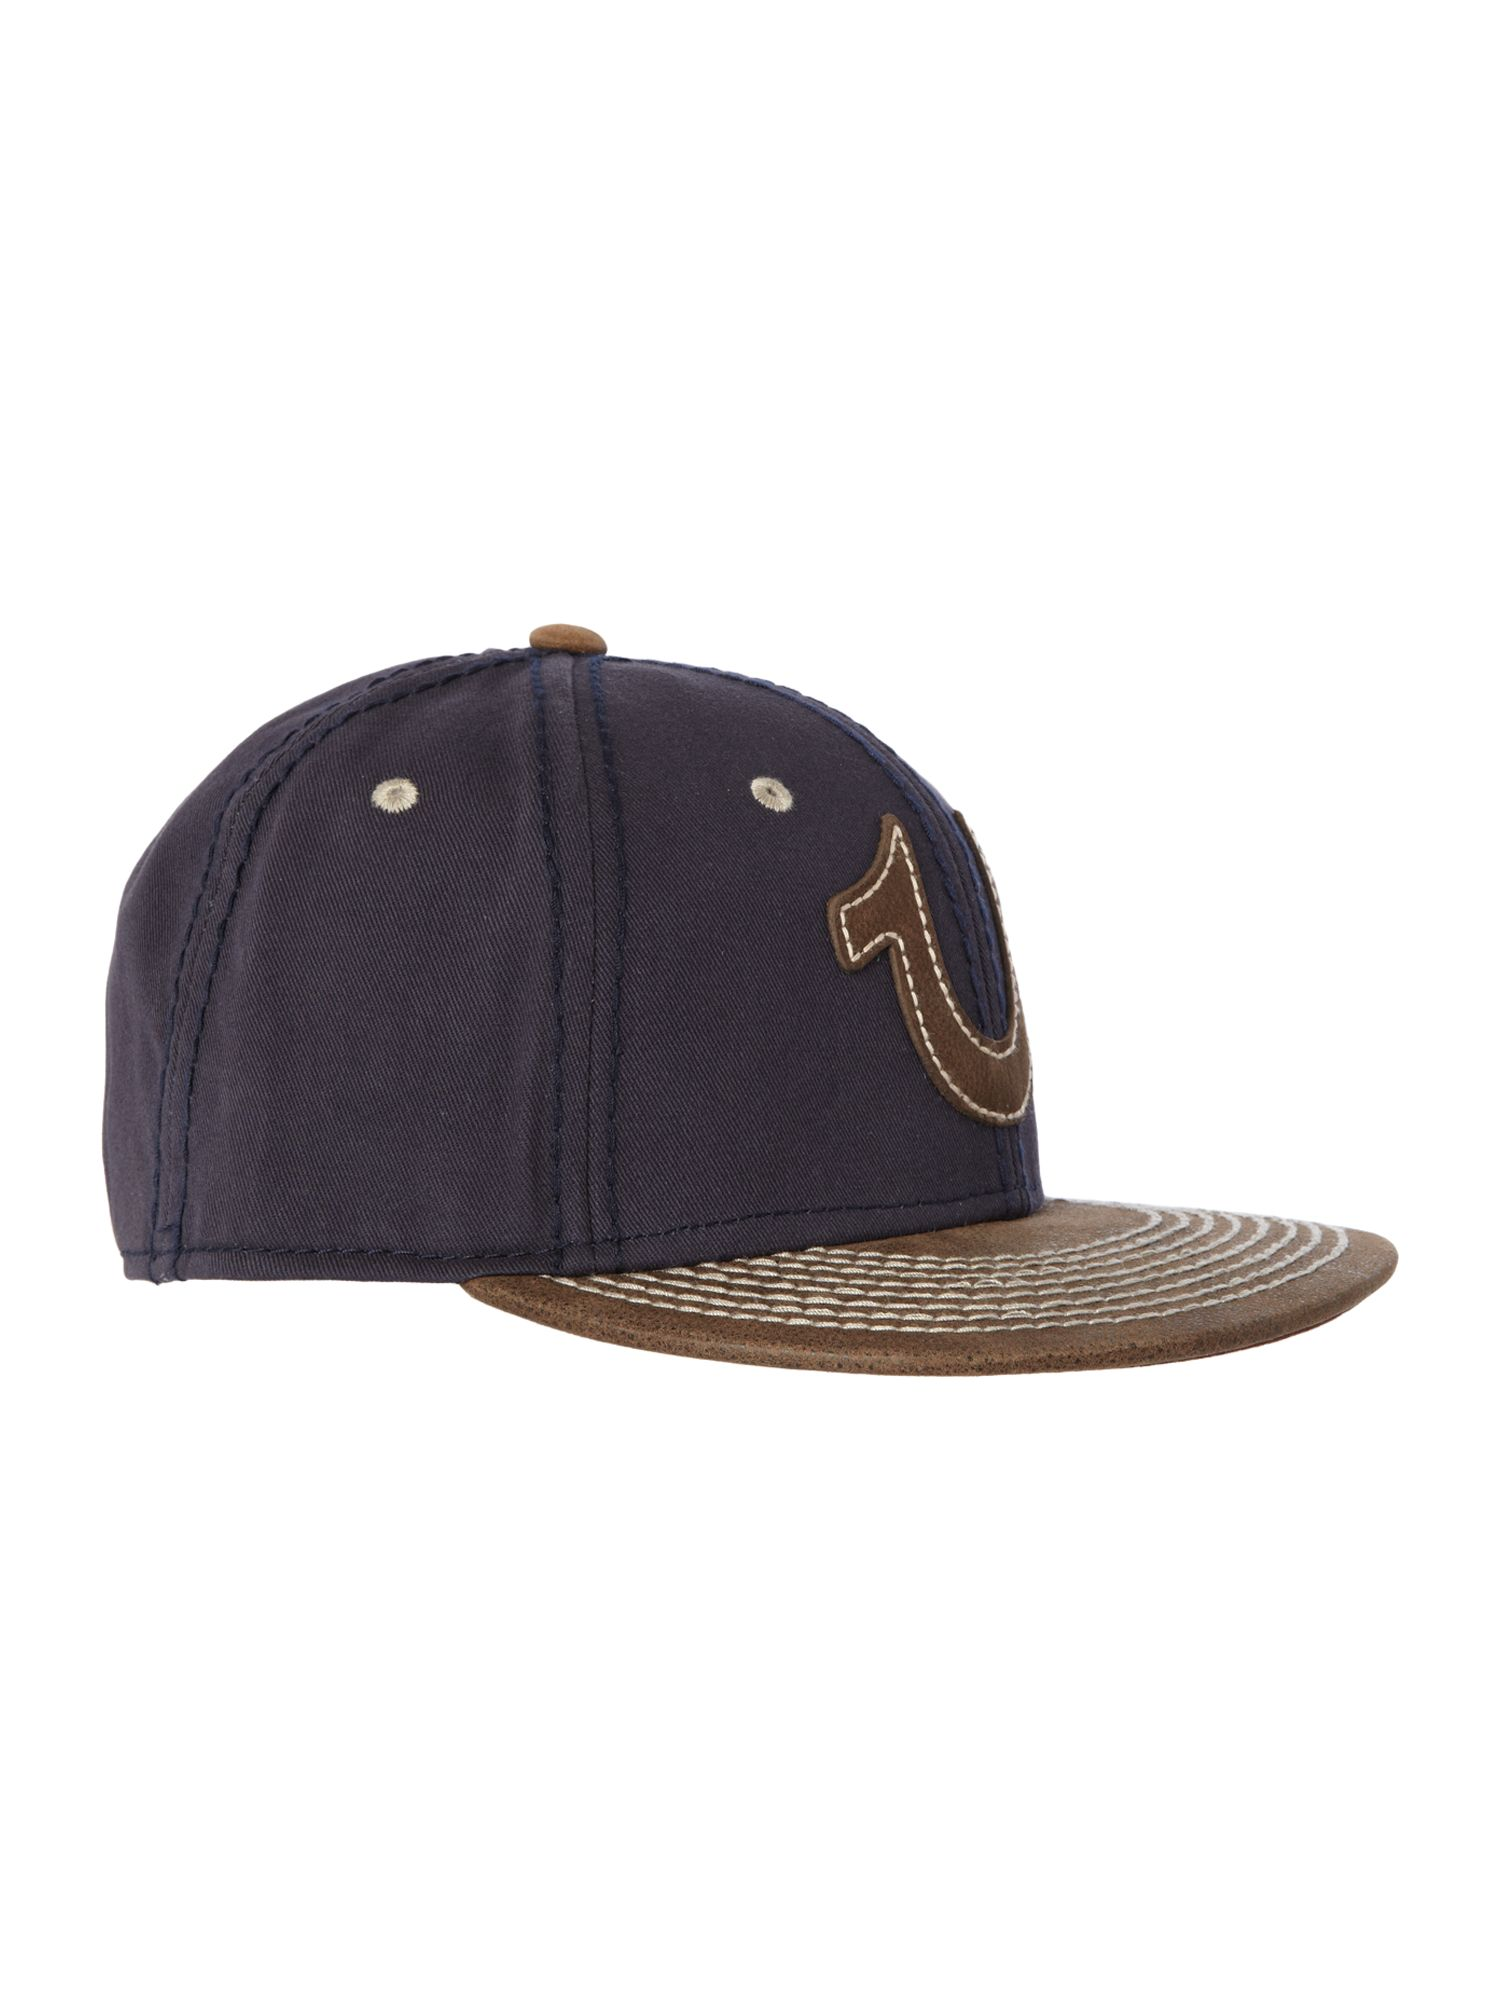 True religion logo hat